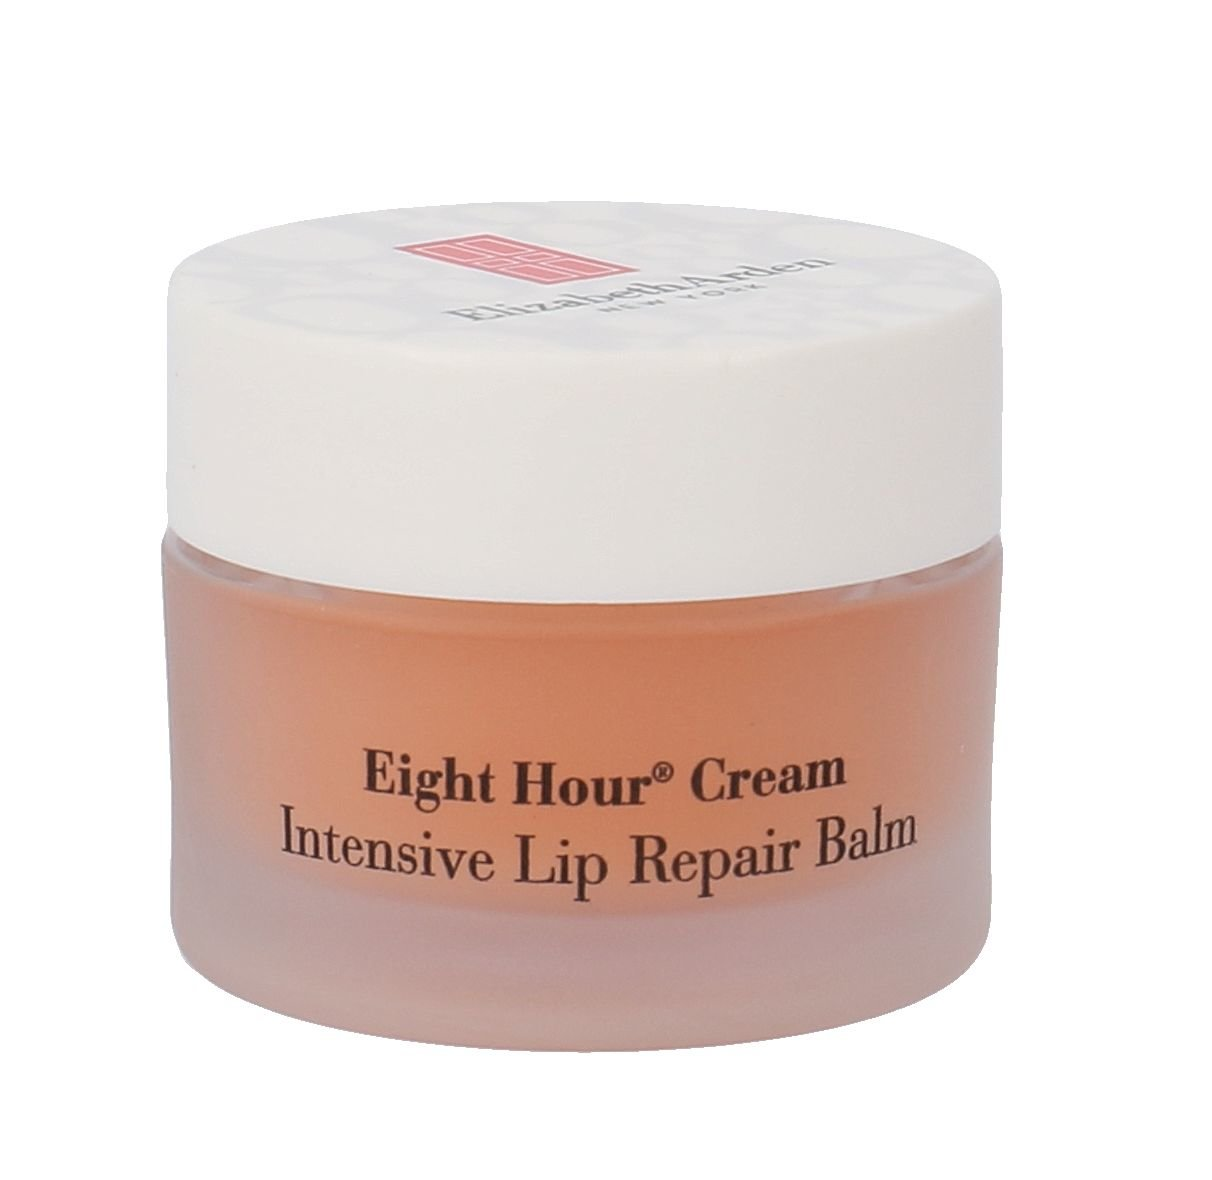 Elizabeth Arden Eight Hour Cream Cosmetic 10ml